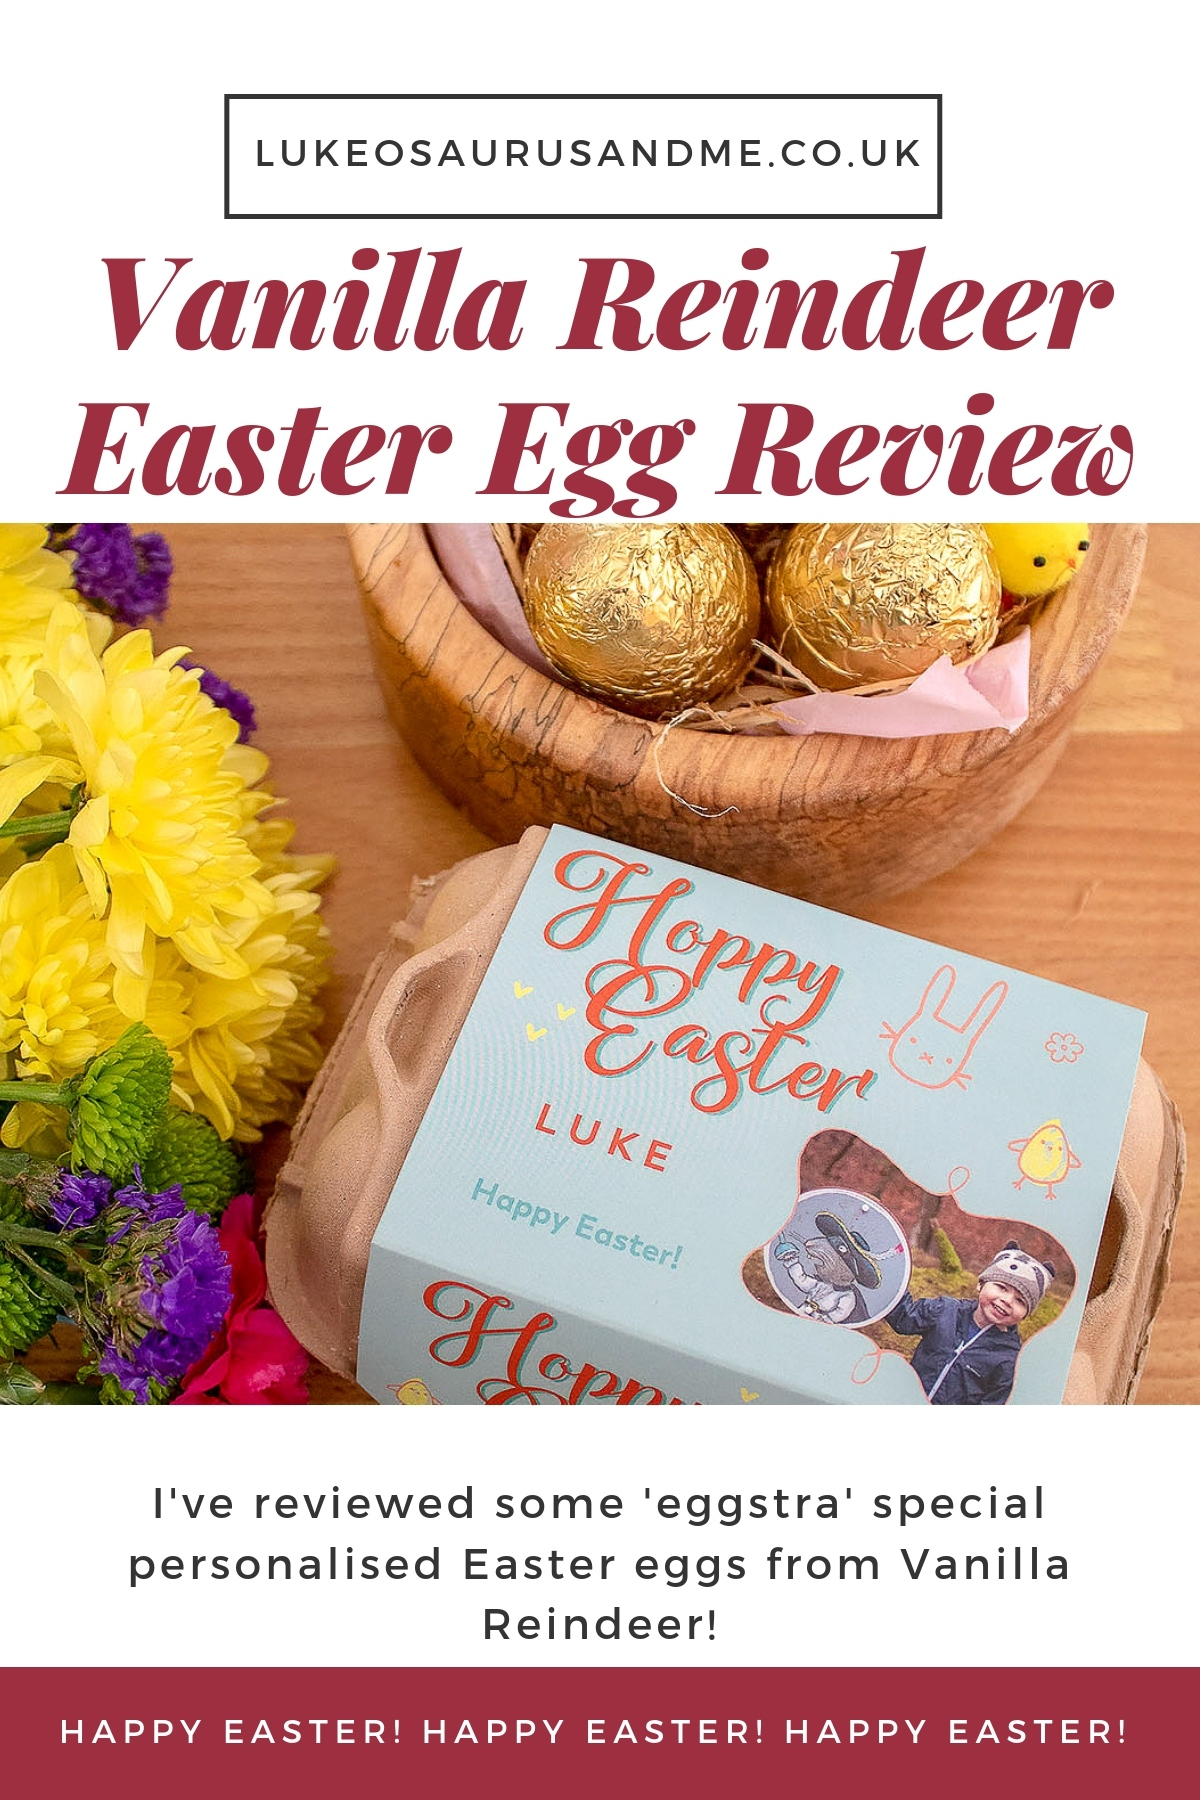 'Eggstra' Special Easter Eggs From Vanilla Reindeer. Review at https://lukeosaurusandme.co.uk